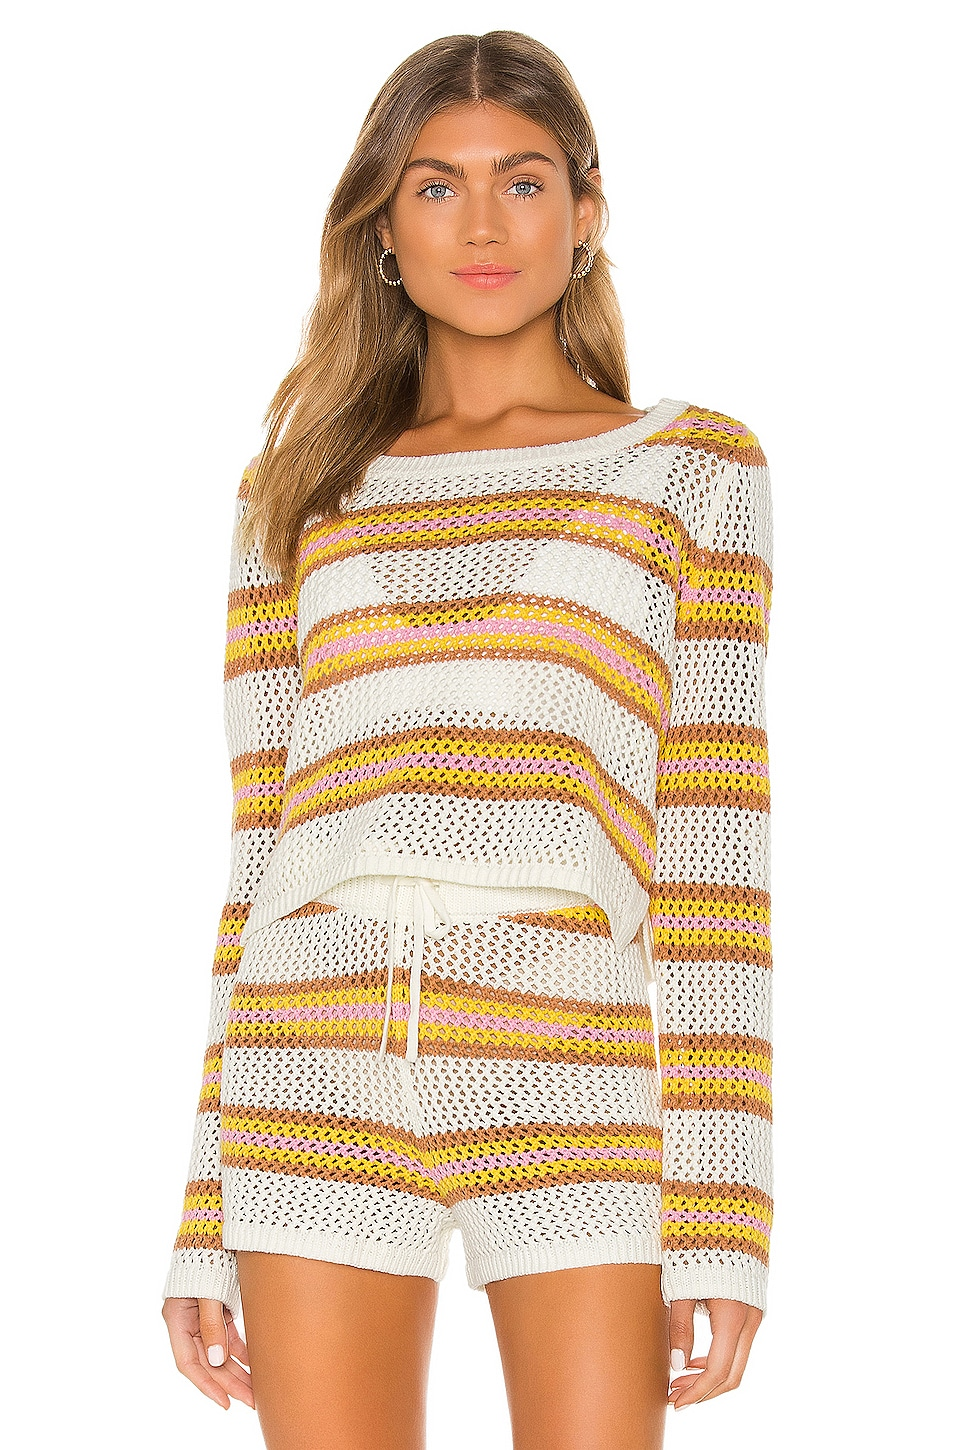 L*SPACE Horizon Sweater in On The Horizon Stripe